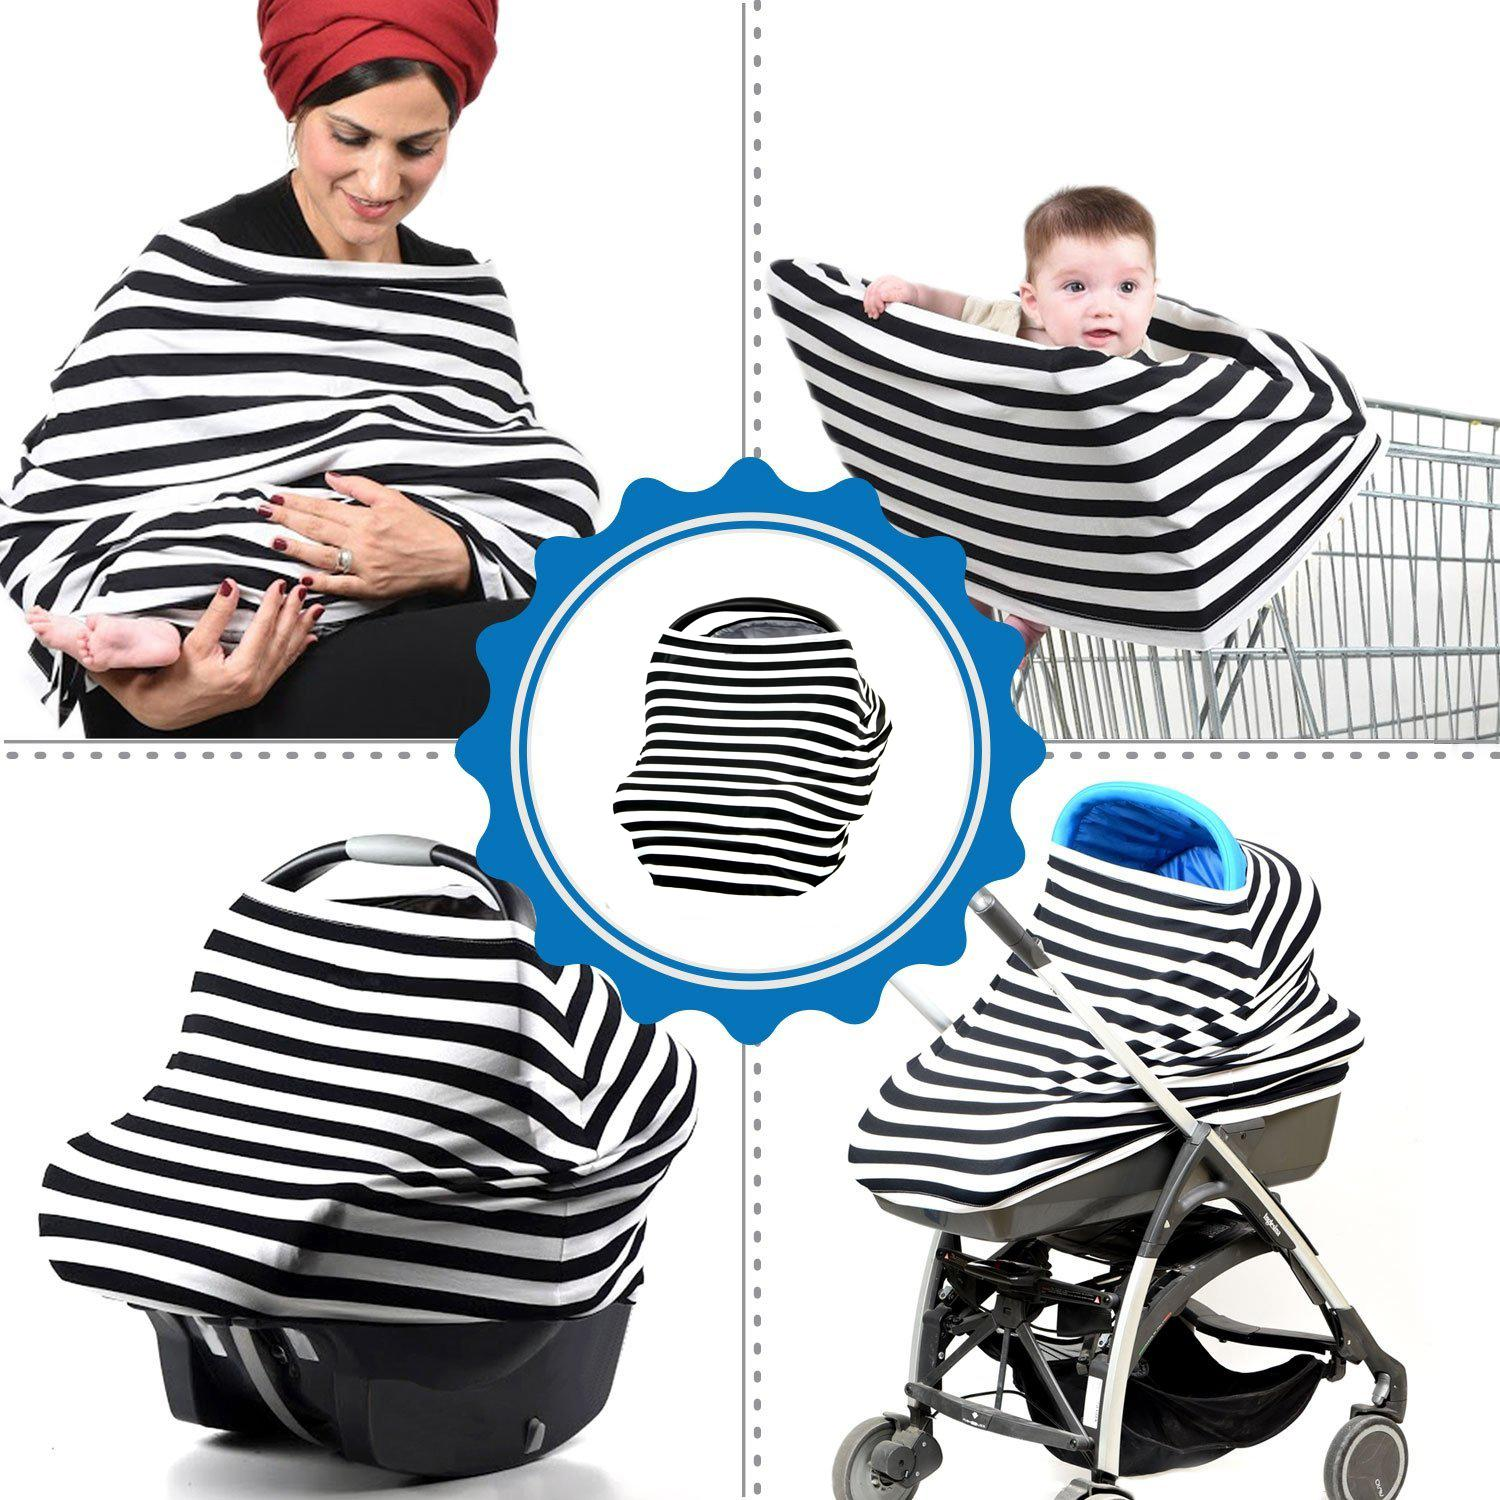 3 In 1 Nursing Covers Breastfeeding Baby Car Seat Cover Canopy Universal Fit For Newborn Boy And Girl Feeding Dish Tube Pumps From